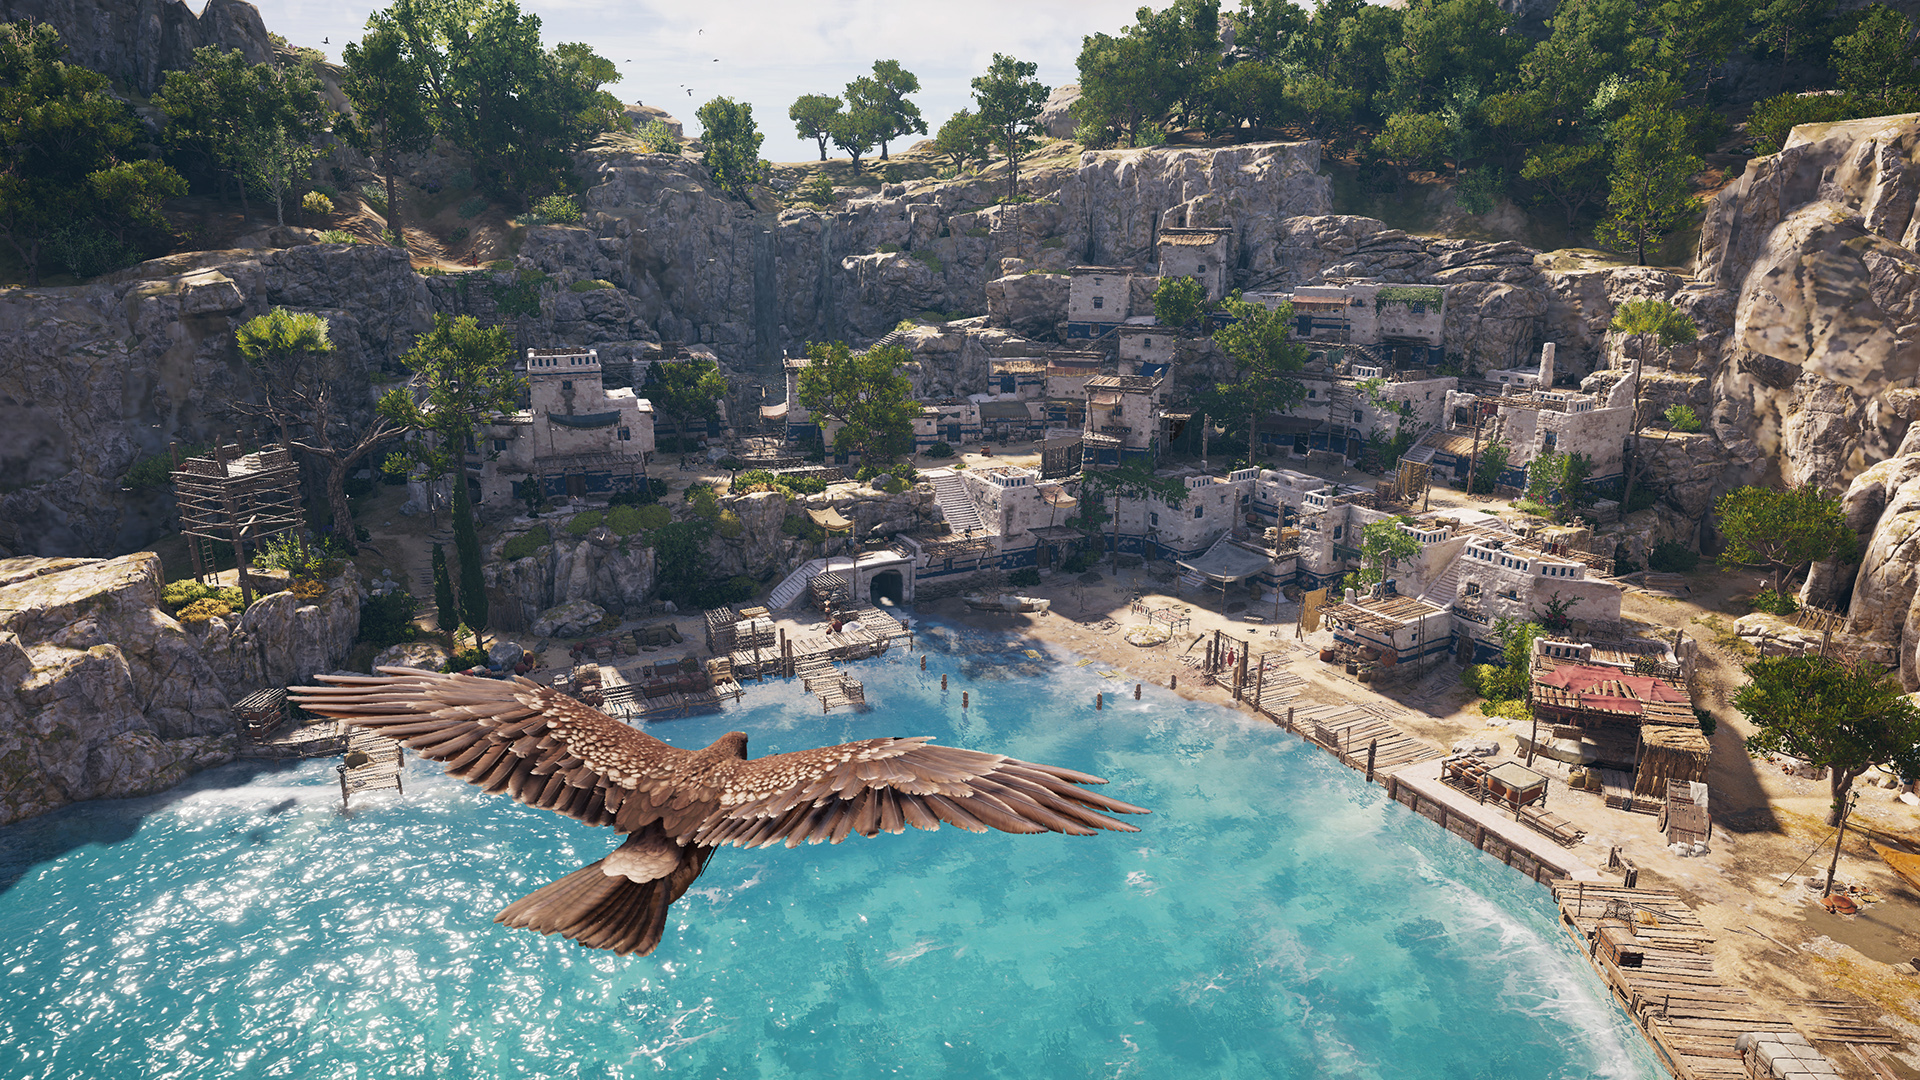 Assassin S Creed Odyssey Is As Close To Greece As You Can Get Without Jumping On A Plane Technical Depicts